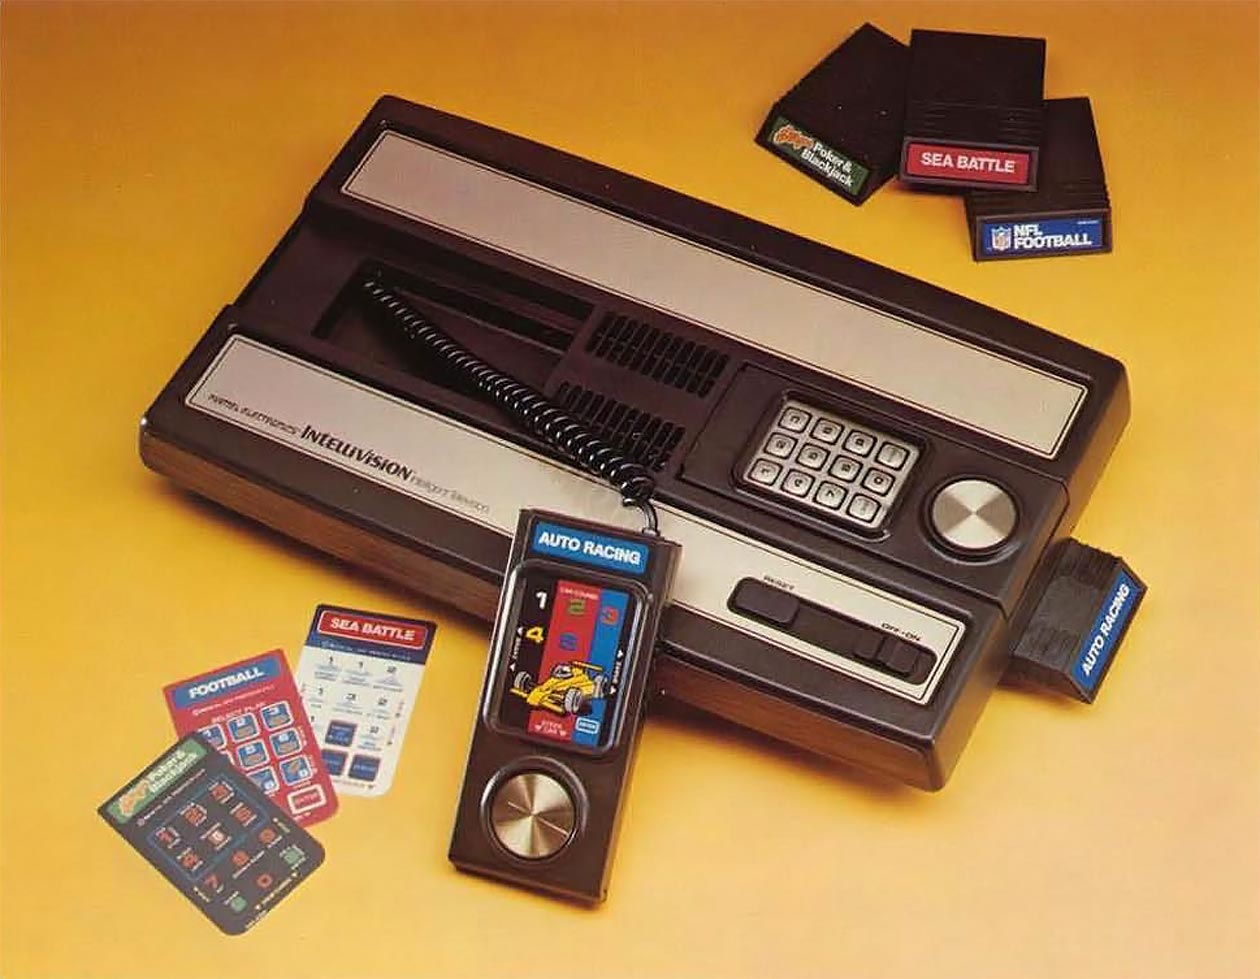 The Mattel Intellivision console video game